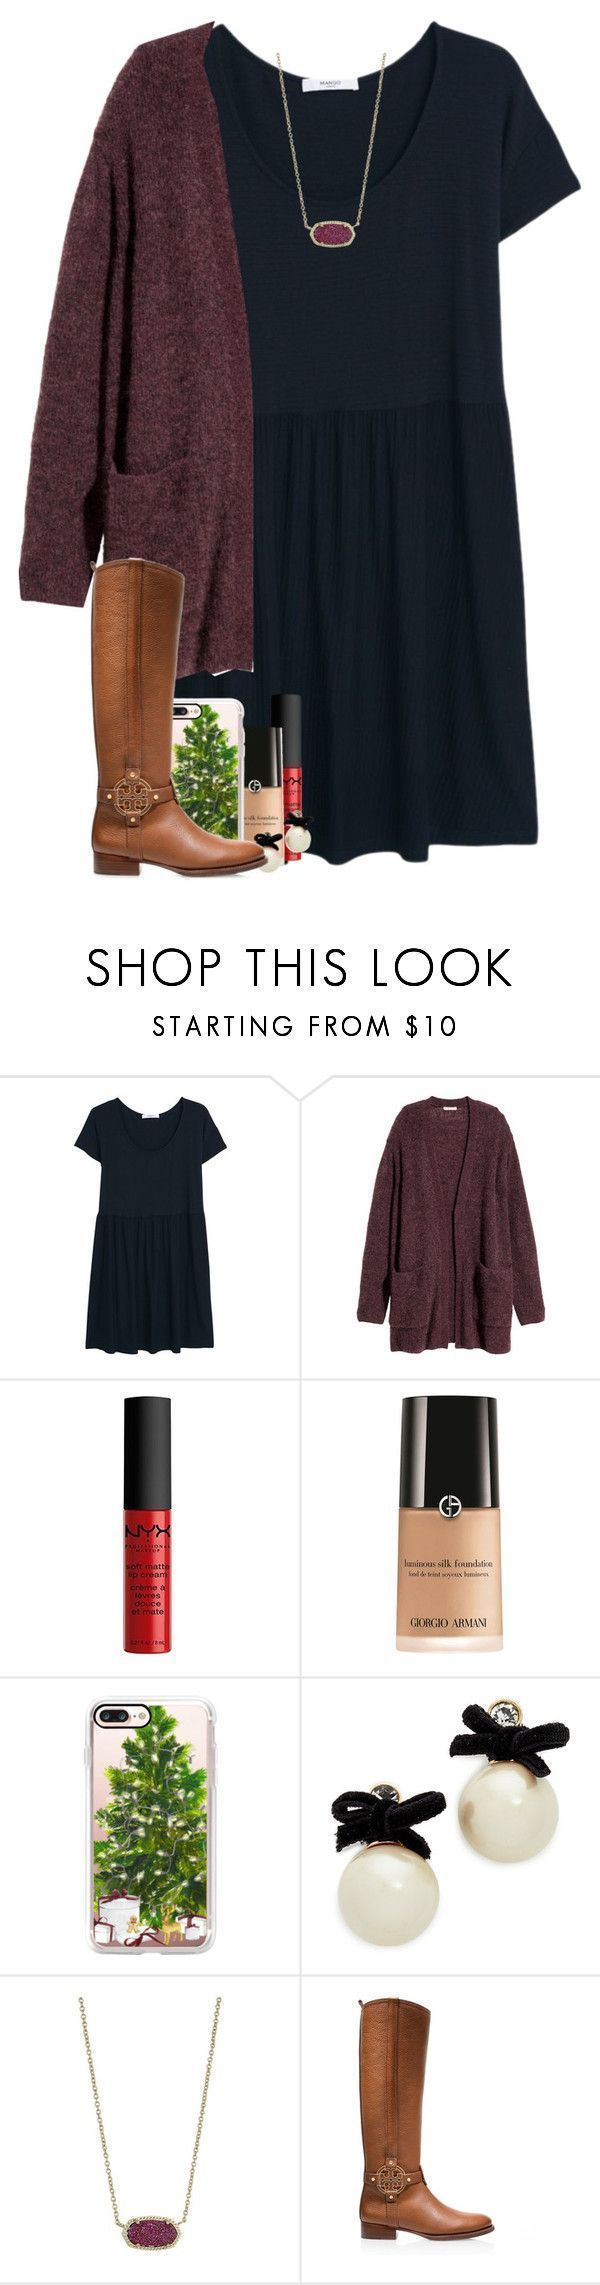 """""""day fourteen: lighting the advent candle"""" by madelinelurene liked on Polyvore featuring MANGO, H&M, NYX, Giorgio Armani, Casetify, Kate Spade, Kendra Scott, Tory Burch and gabschristmascontest17"""